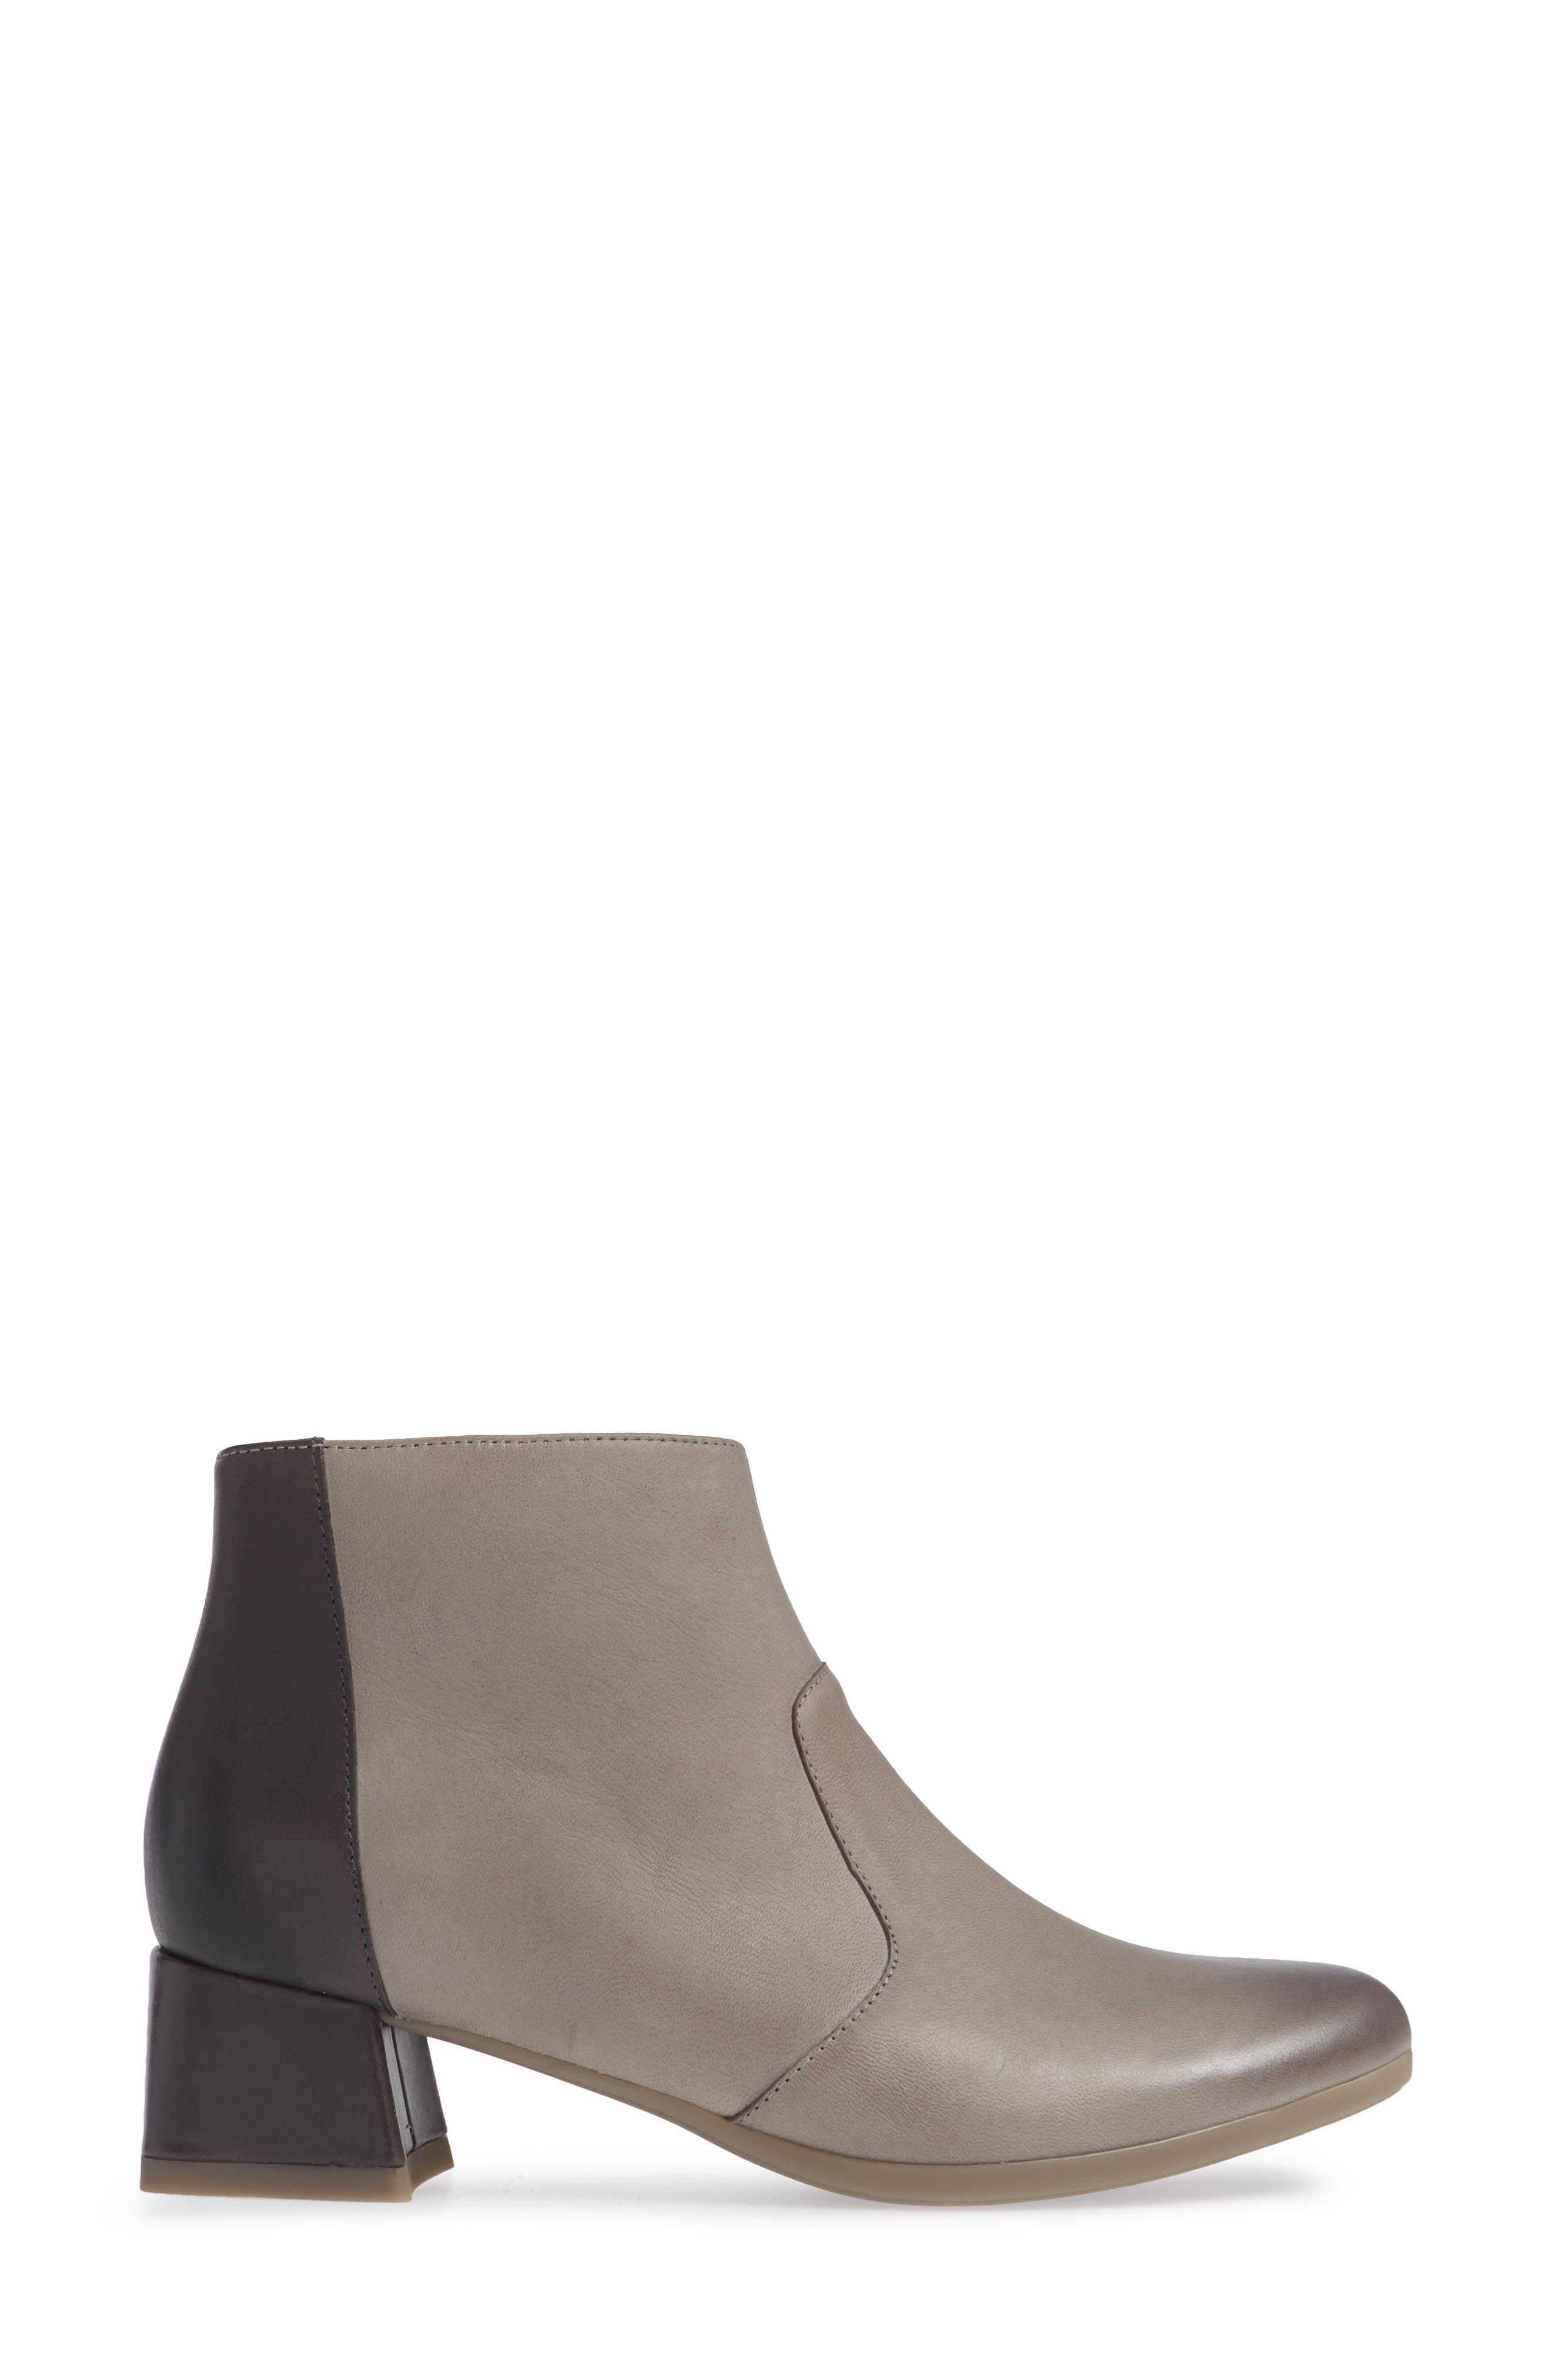 Petra Bootie,                             Alternate thumbnail 3, color,                             STONE BURNISHED NUBUCK LEATHER